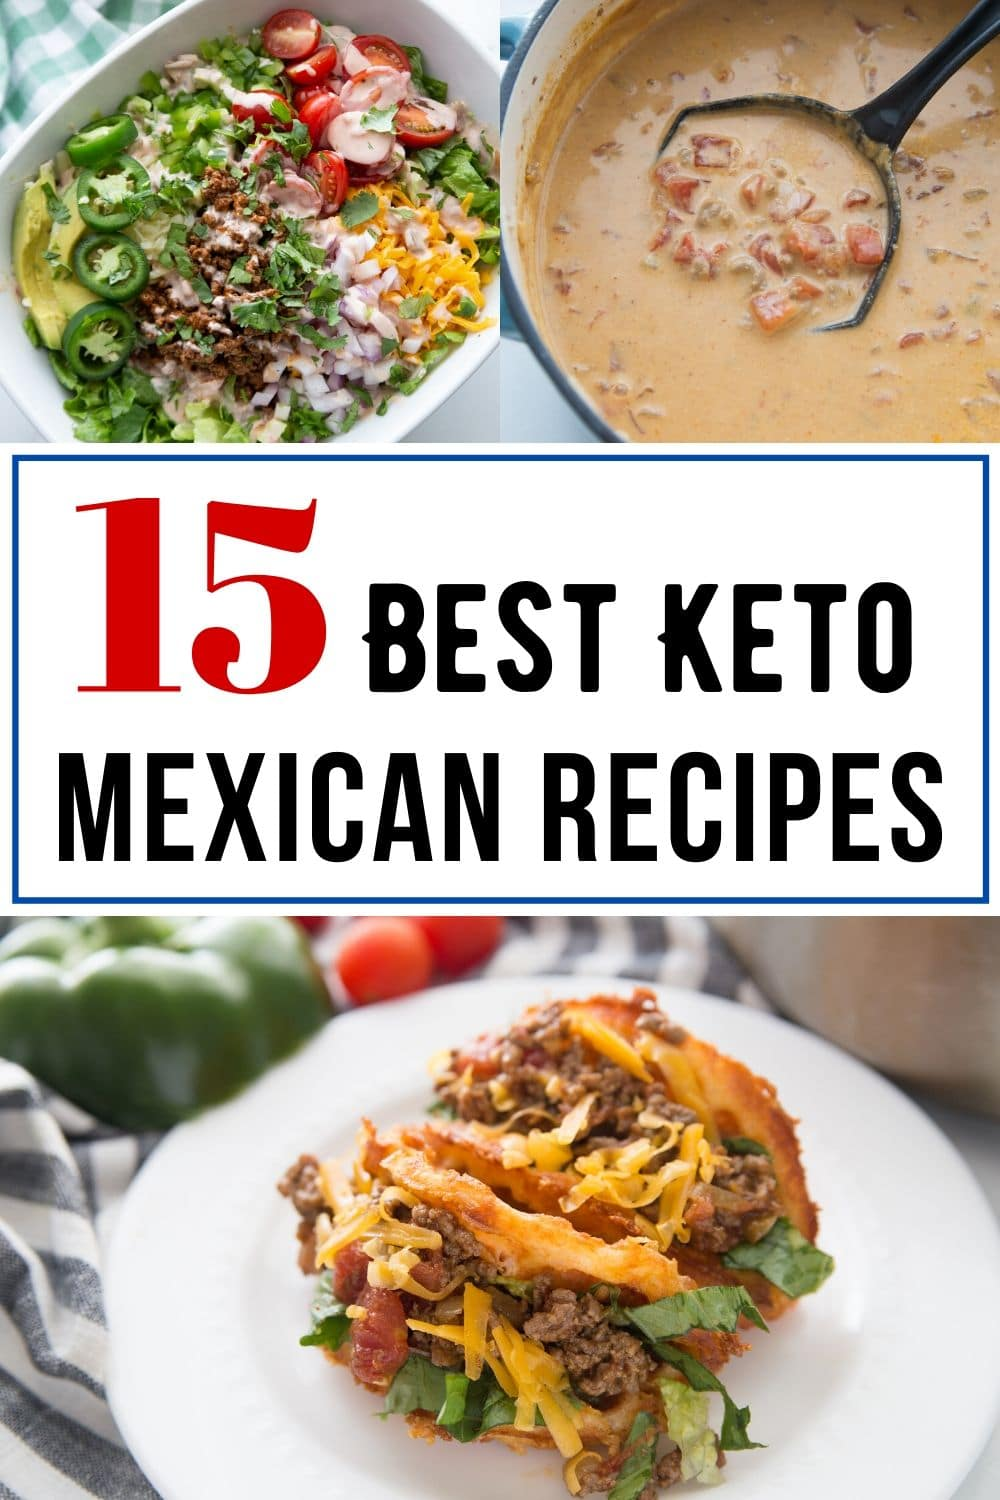 15 best Keto Mexican recipes collage